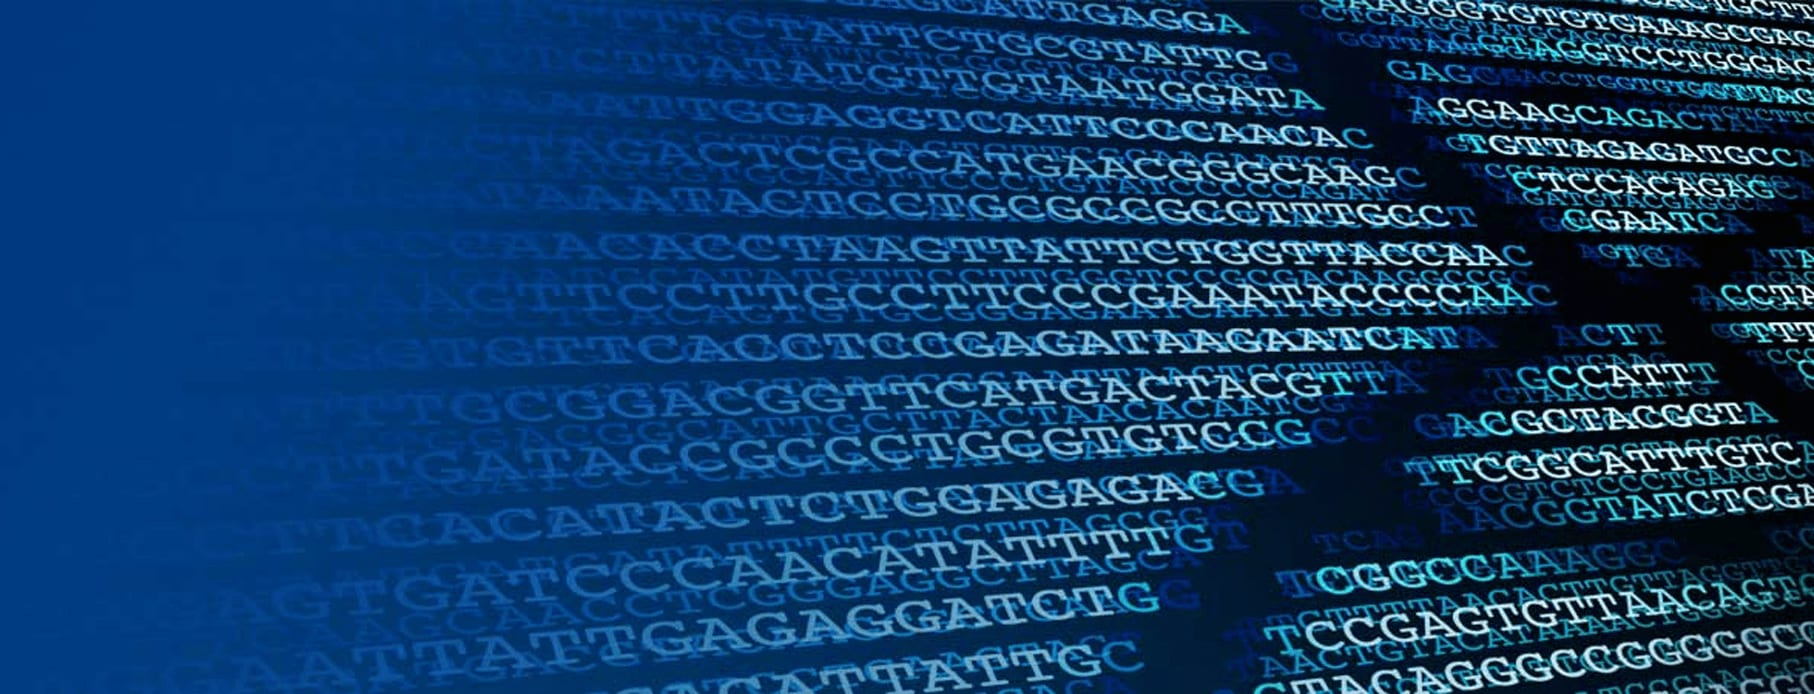 Whole Exome Sequencing (WES)